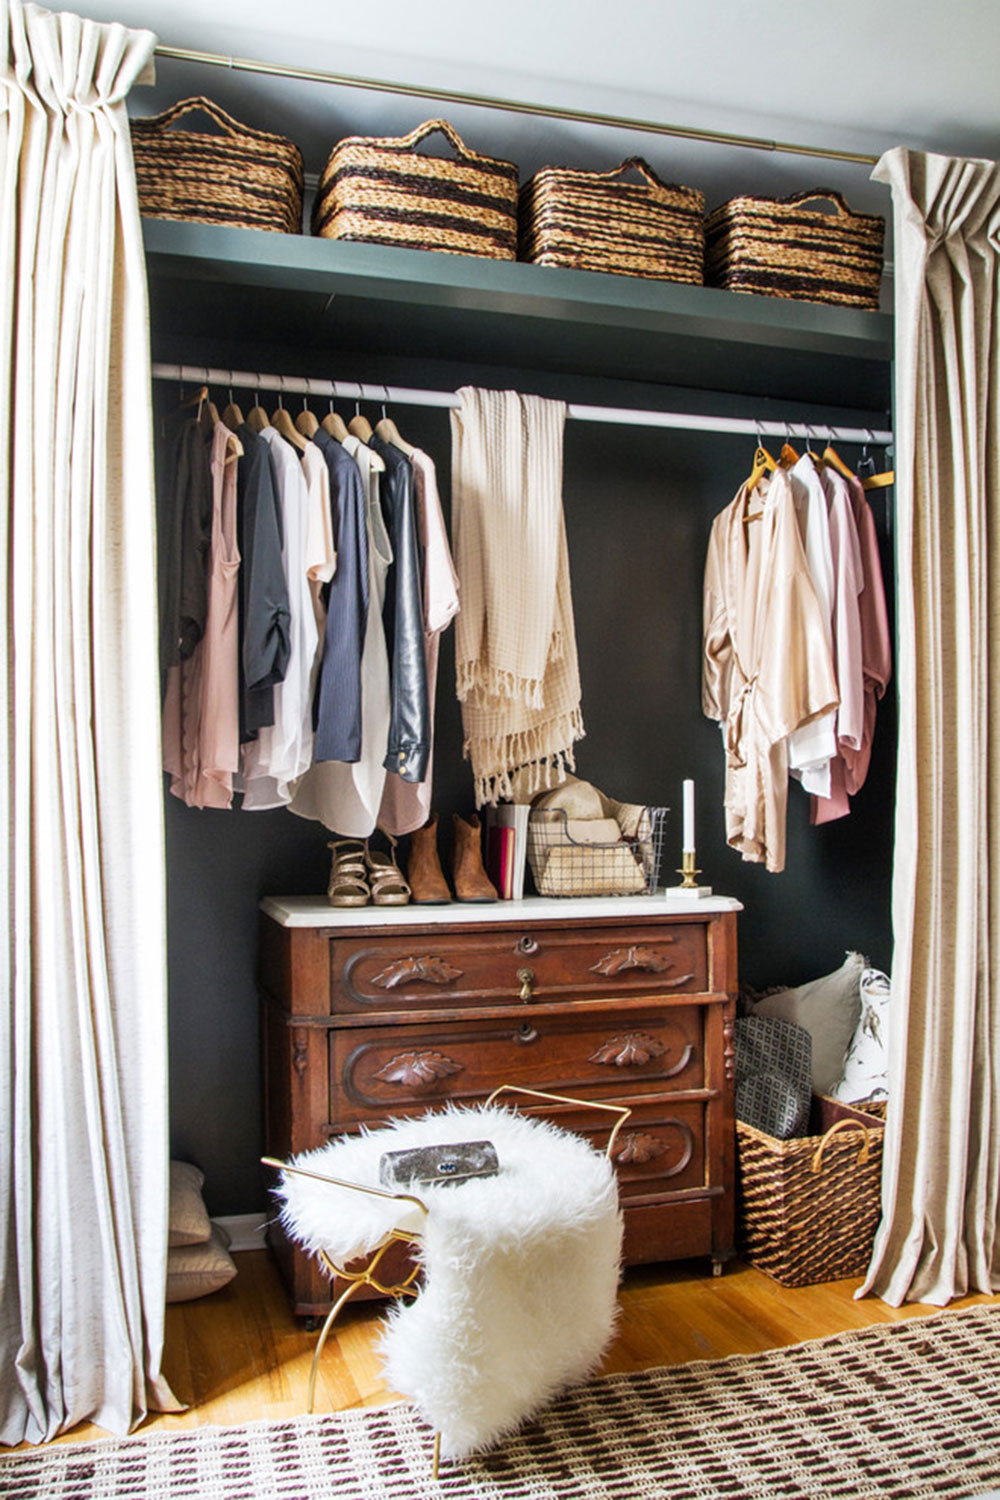 EM-Interiors-Chicago-One-Room-Challenge-2015-by-Kelly-Peloza-Photo-LLC How to Cover a Cabinet Without Doors (Inexpensive Options)